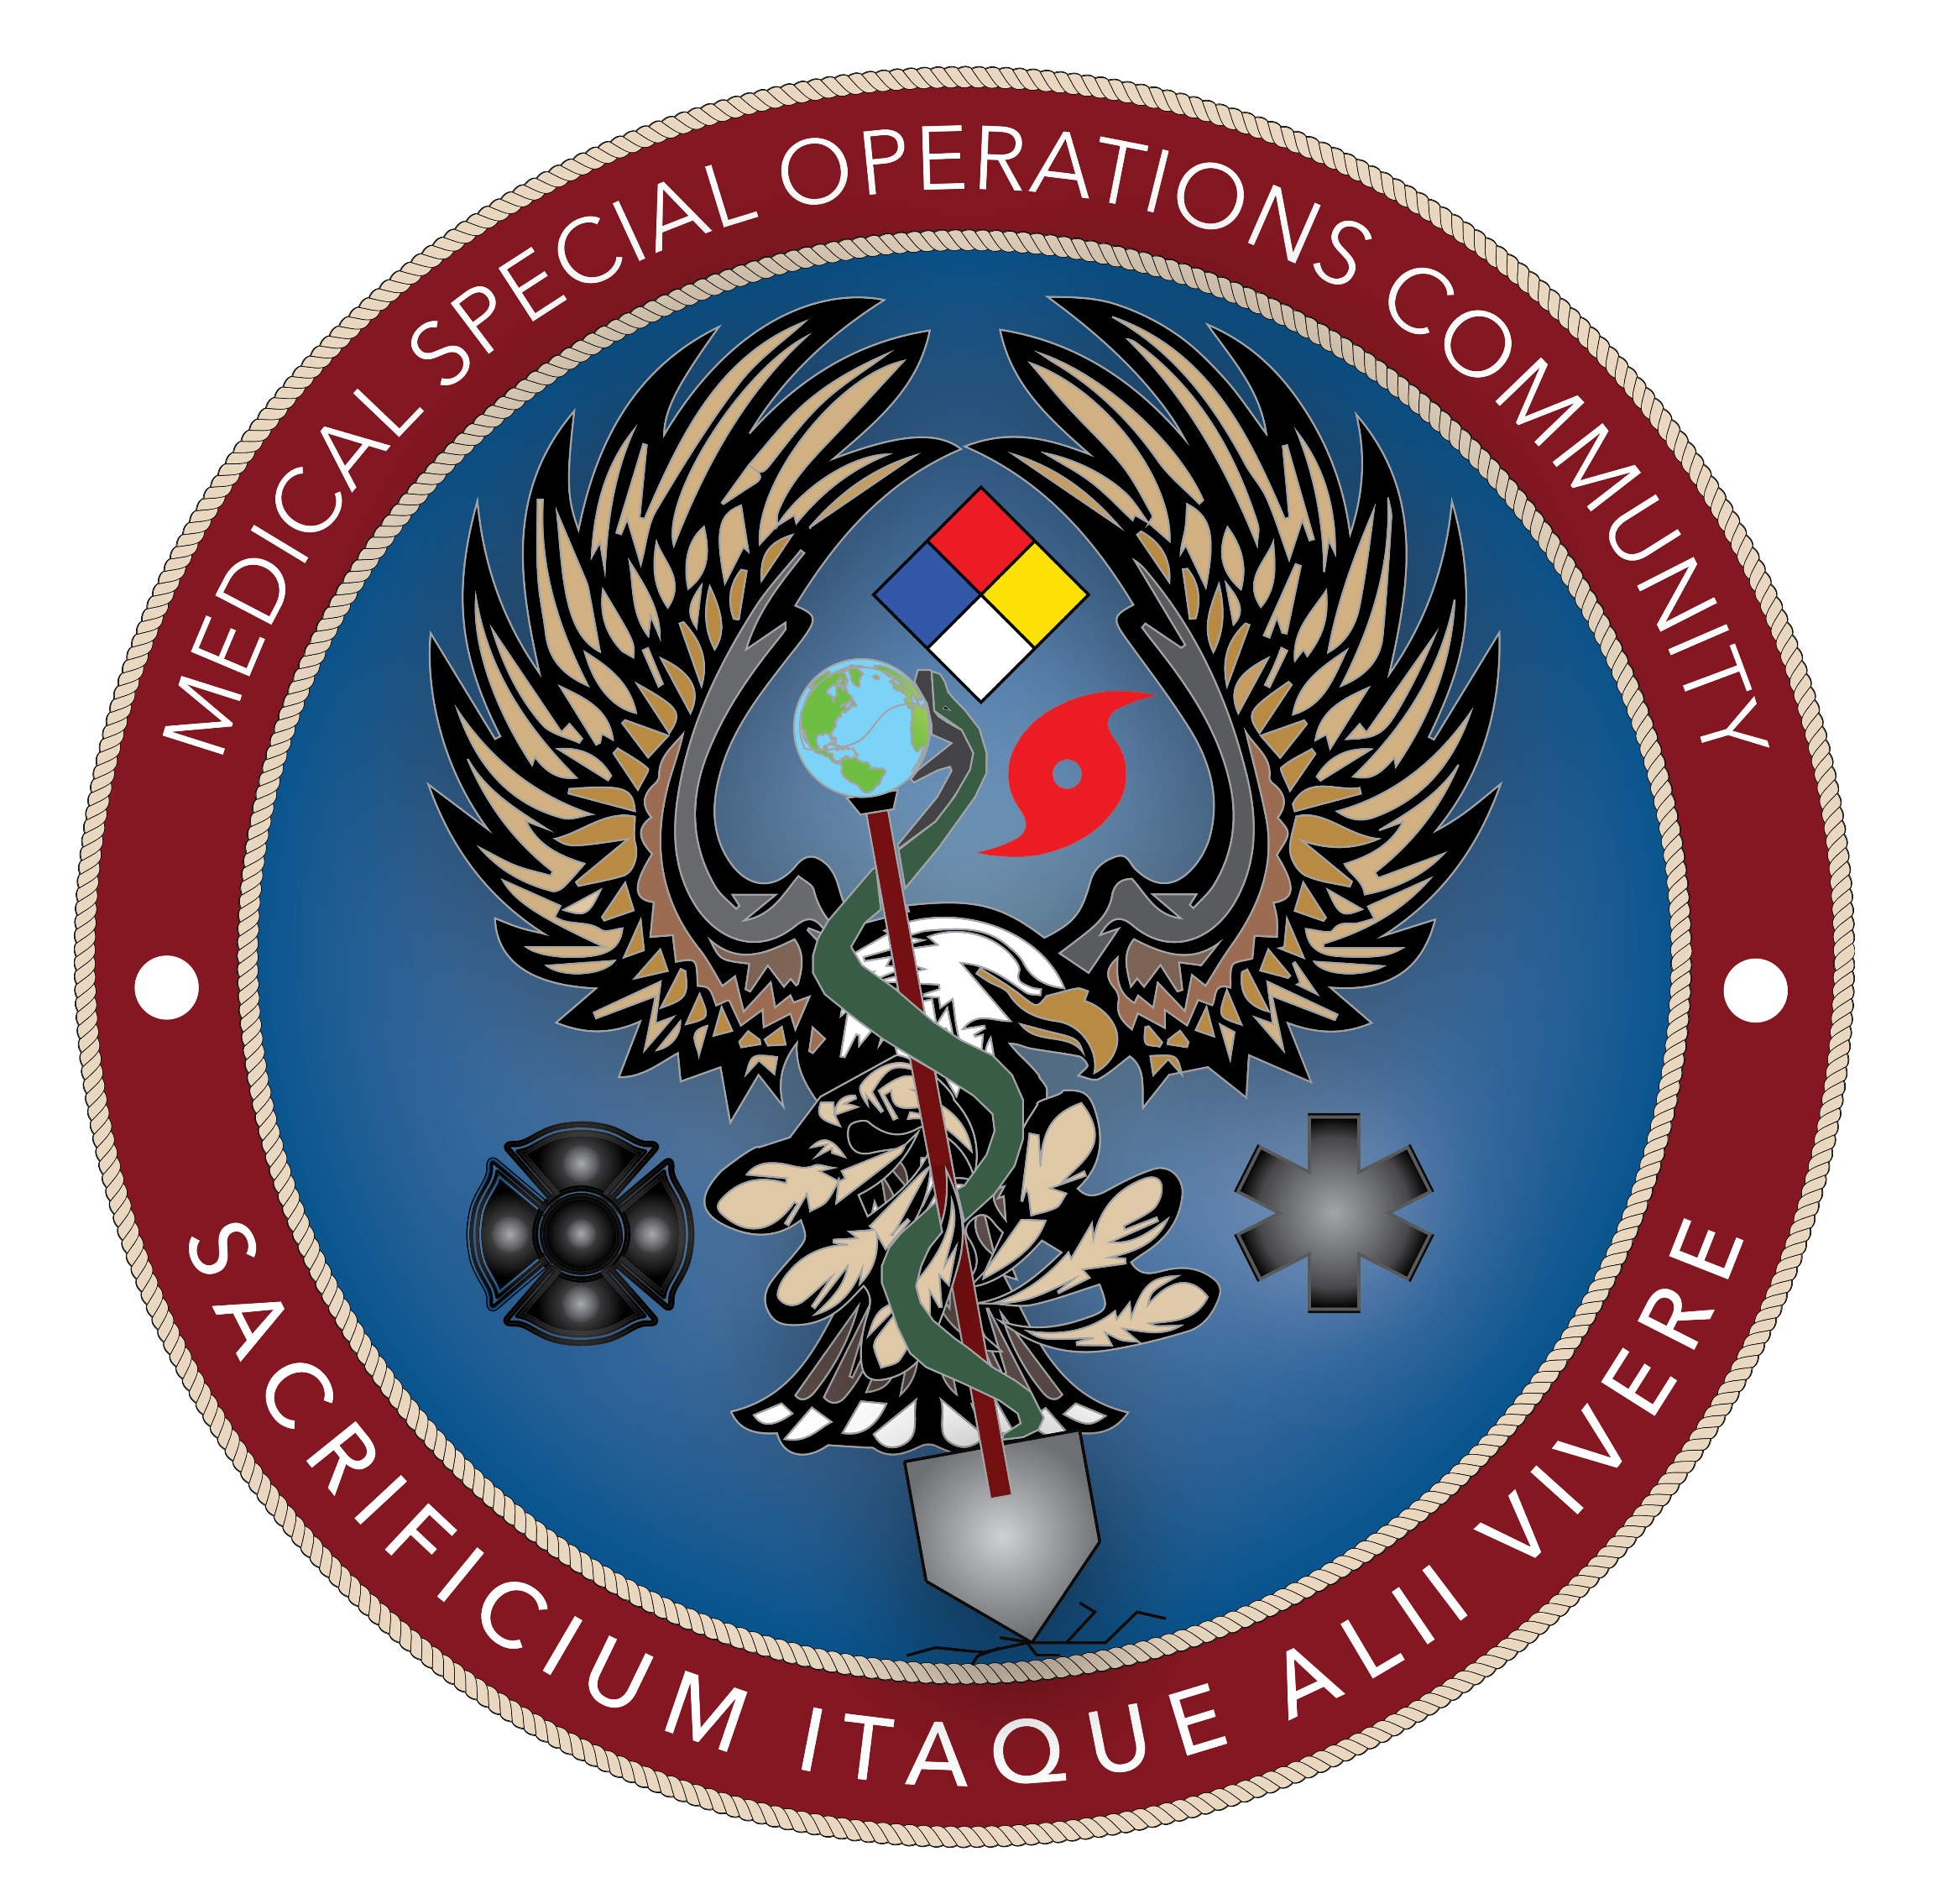 Medical Special Operations Community